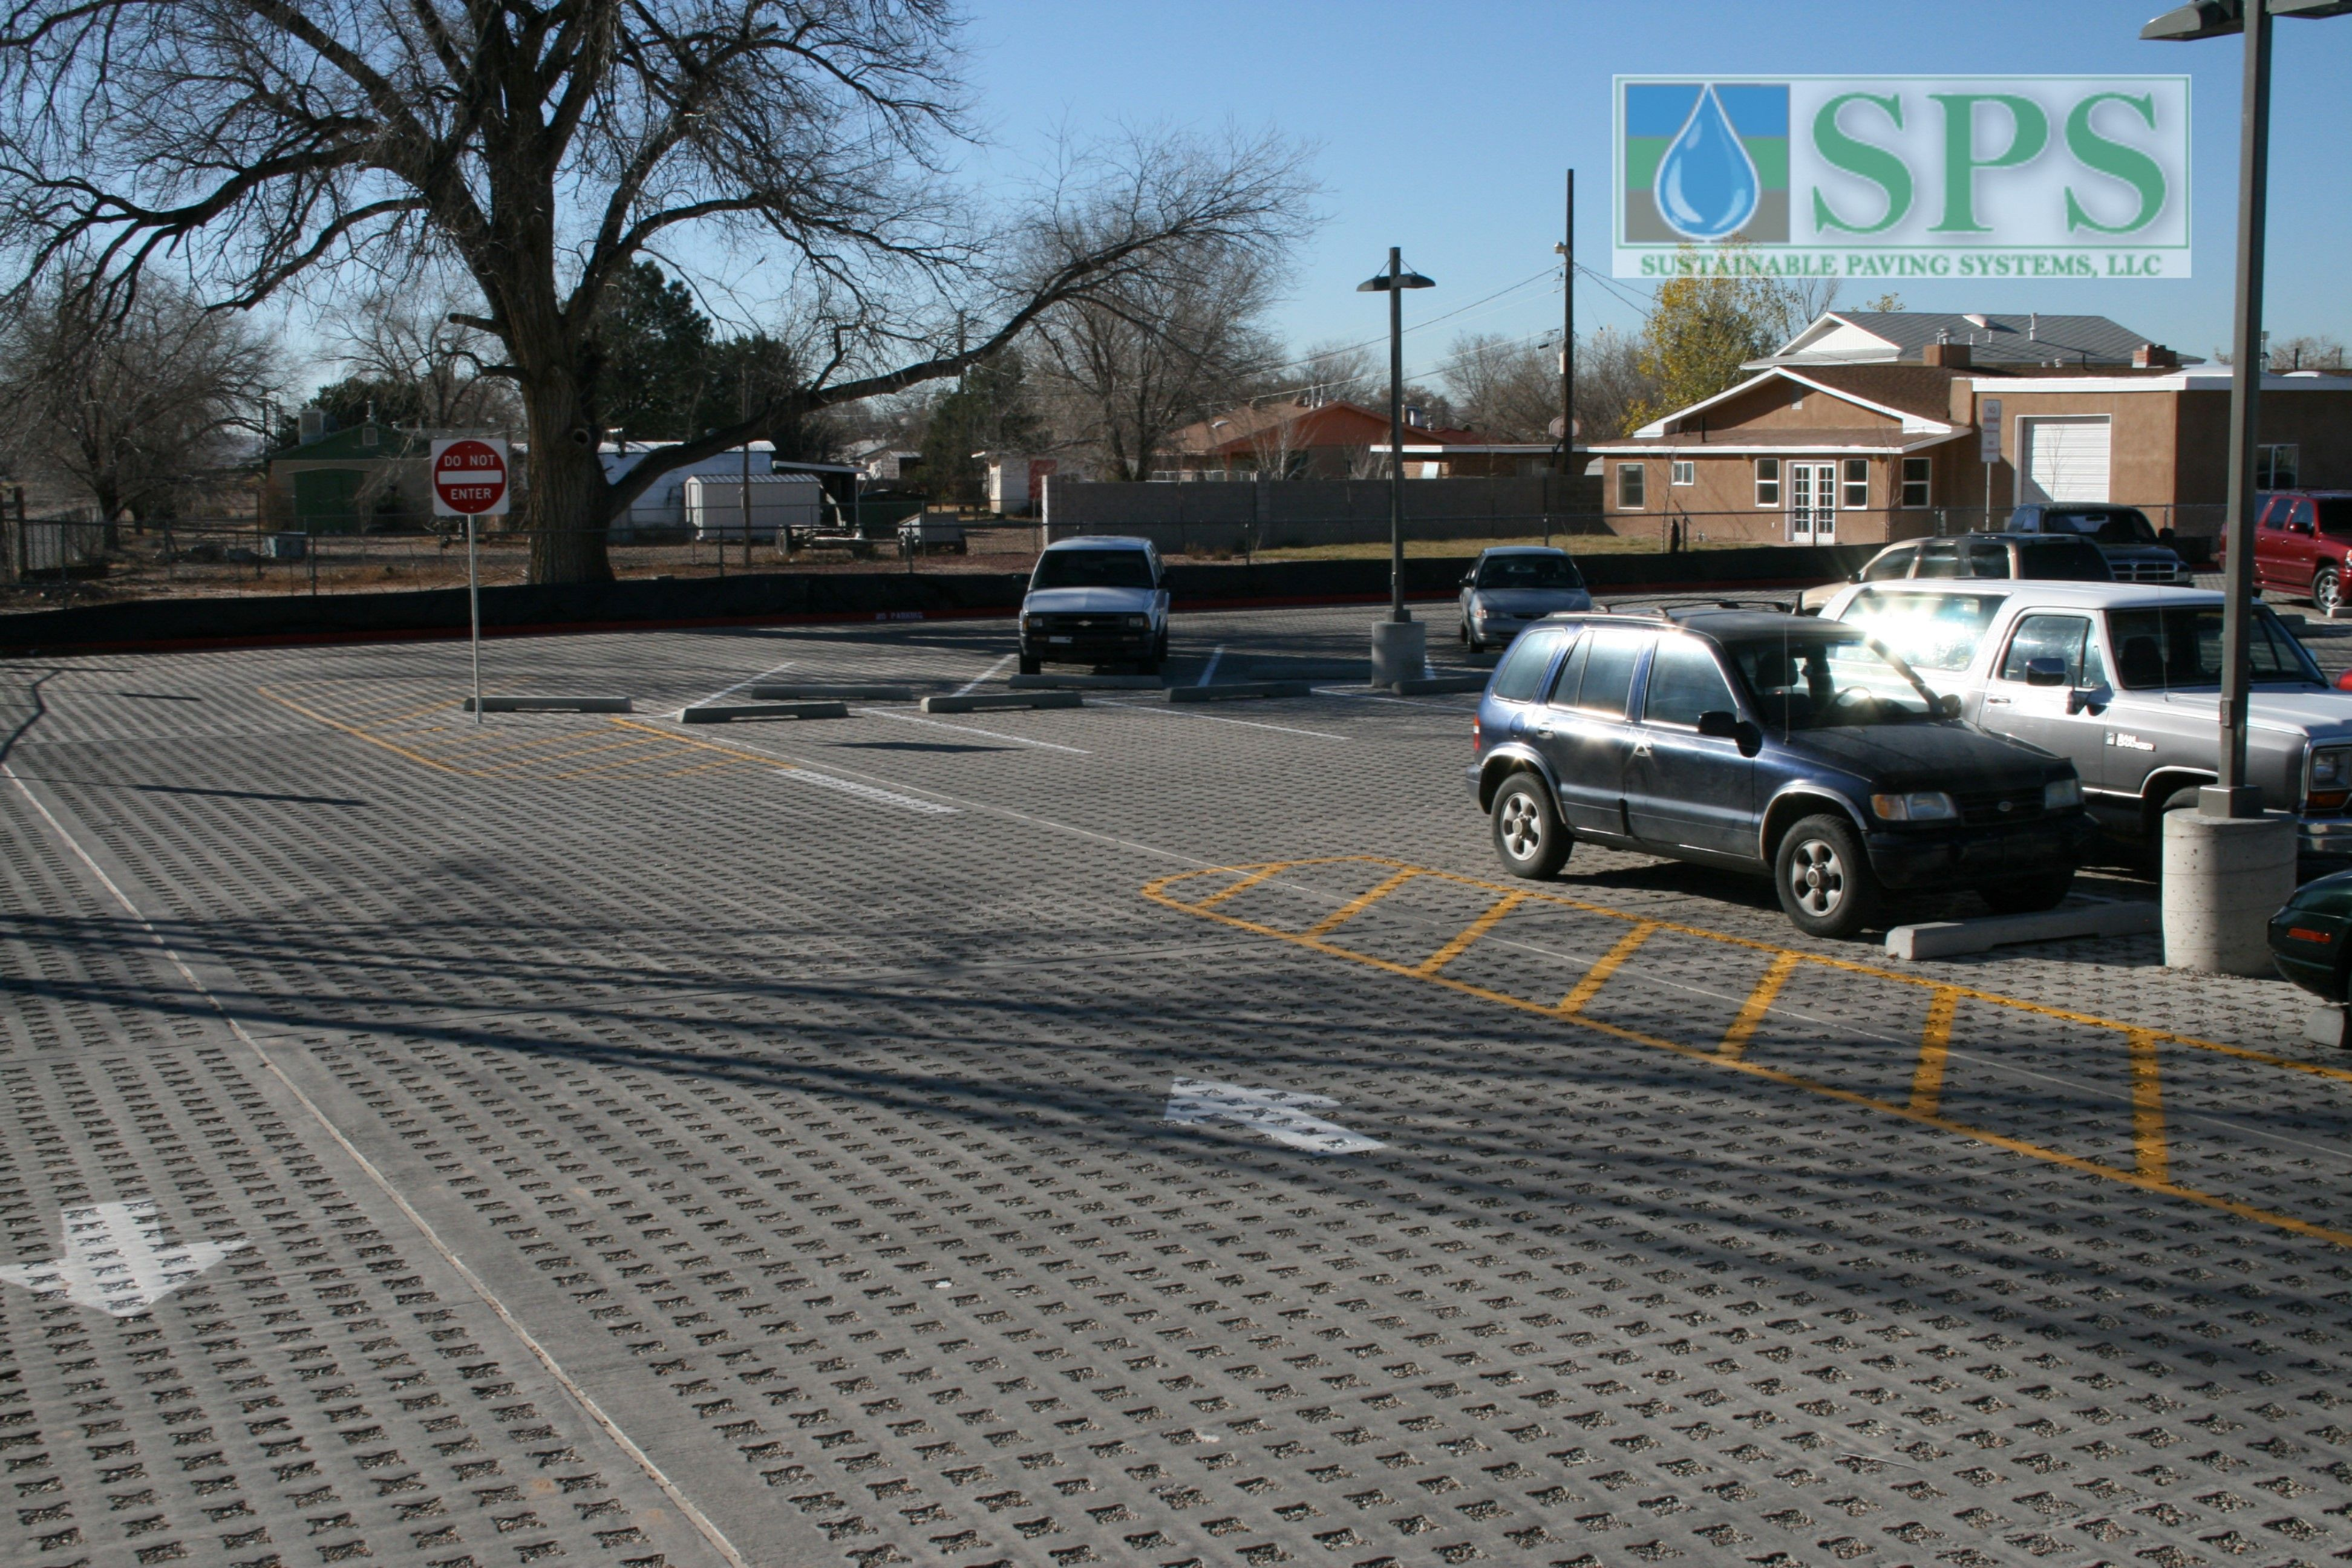 Grasscrete Stone Filled System At Navajo Elementary School View Of Parking Lot_07